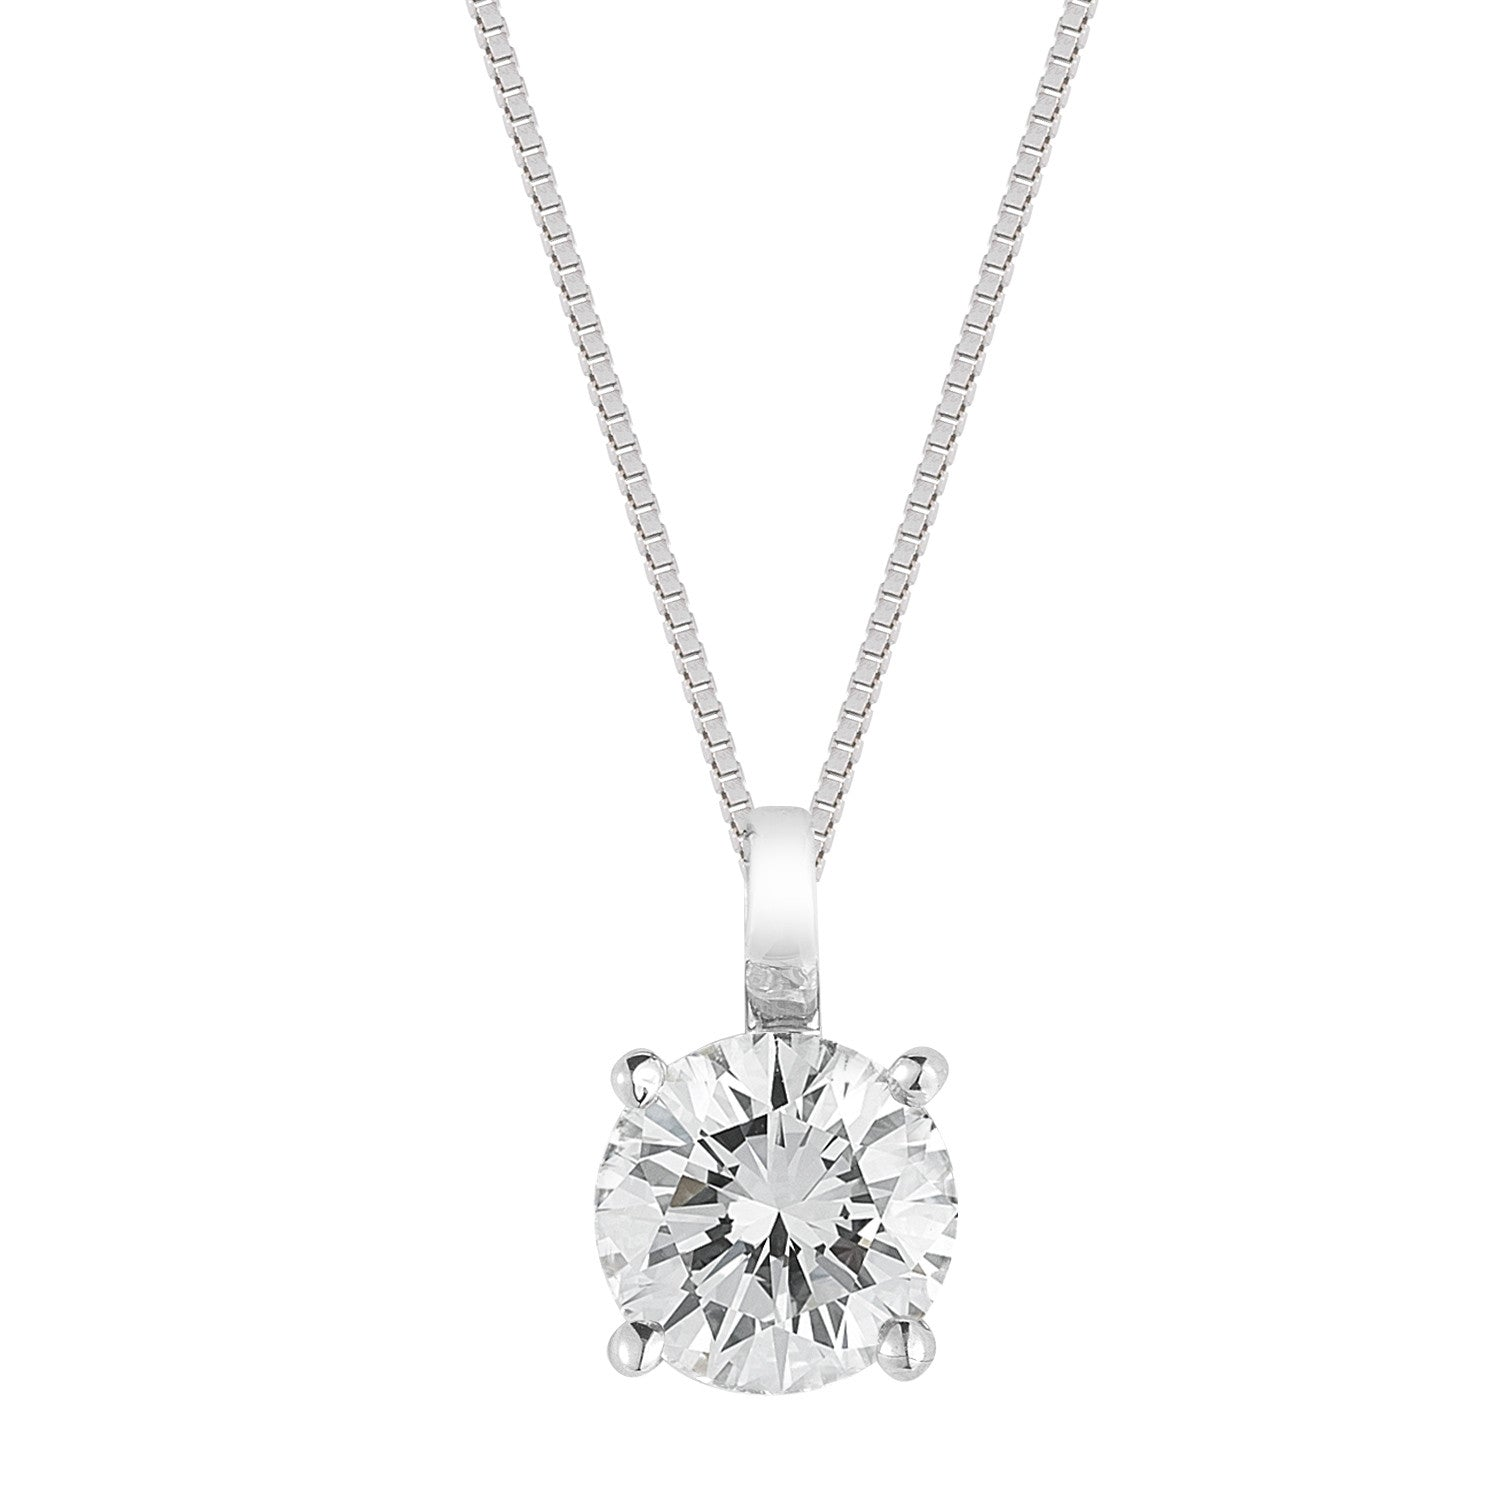 solitaire diamond mx lugaro wg necklace pendant canadian jewellery sj sec